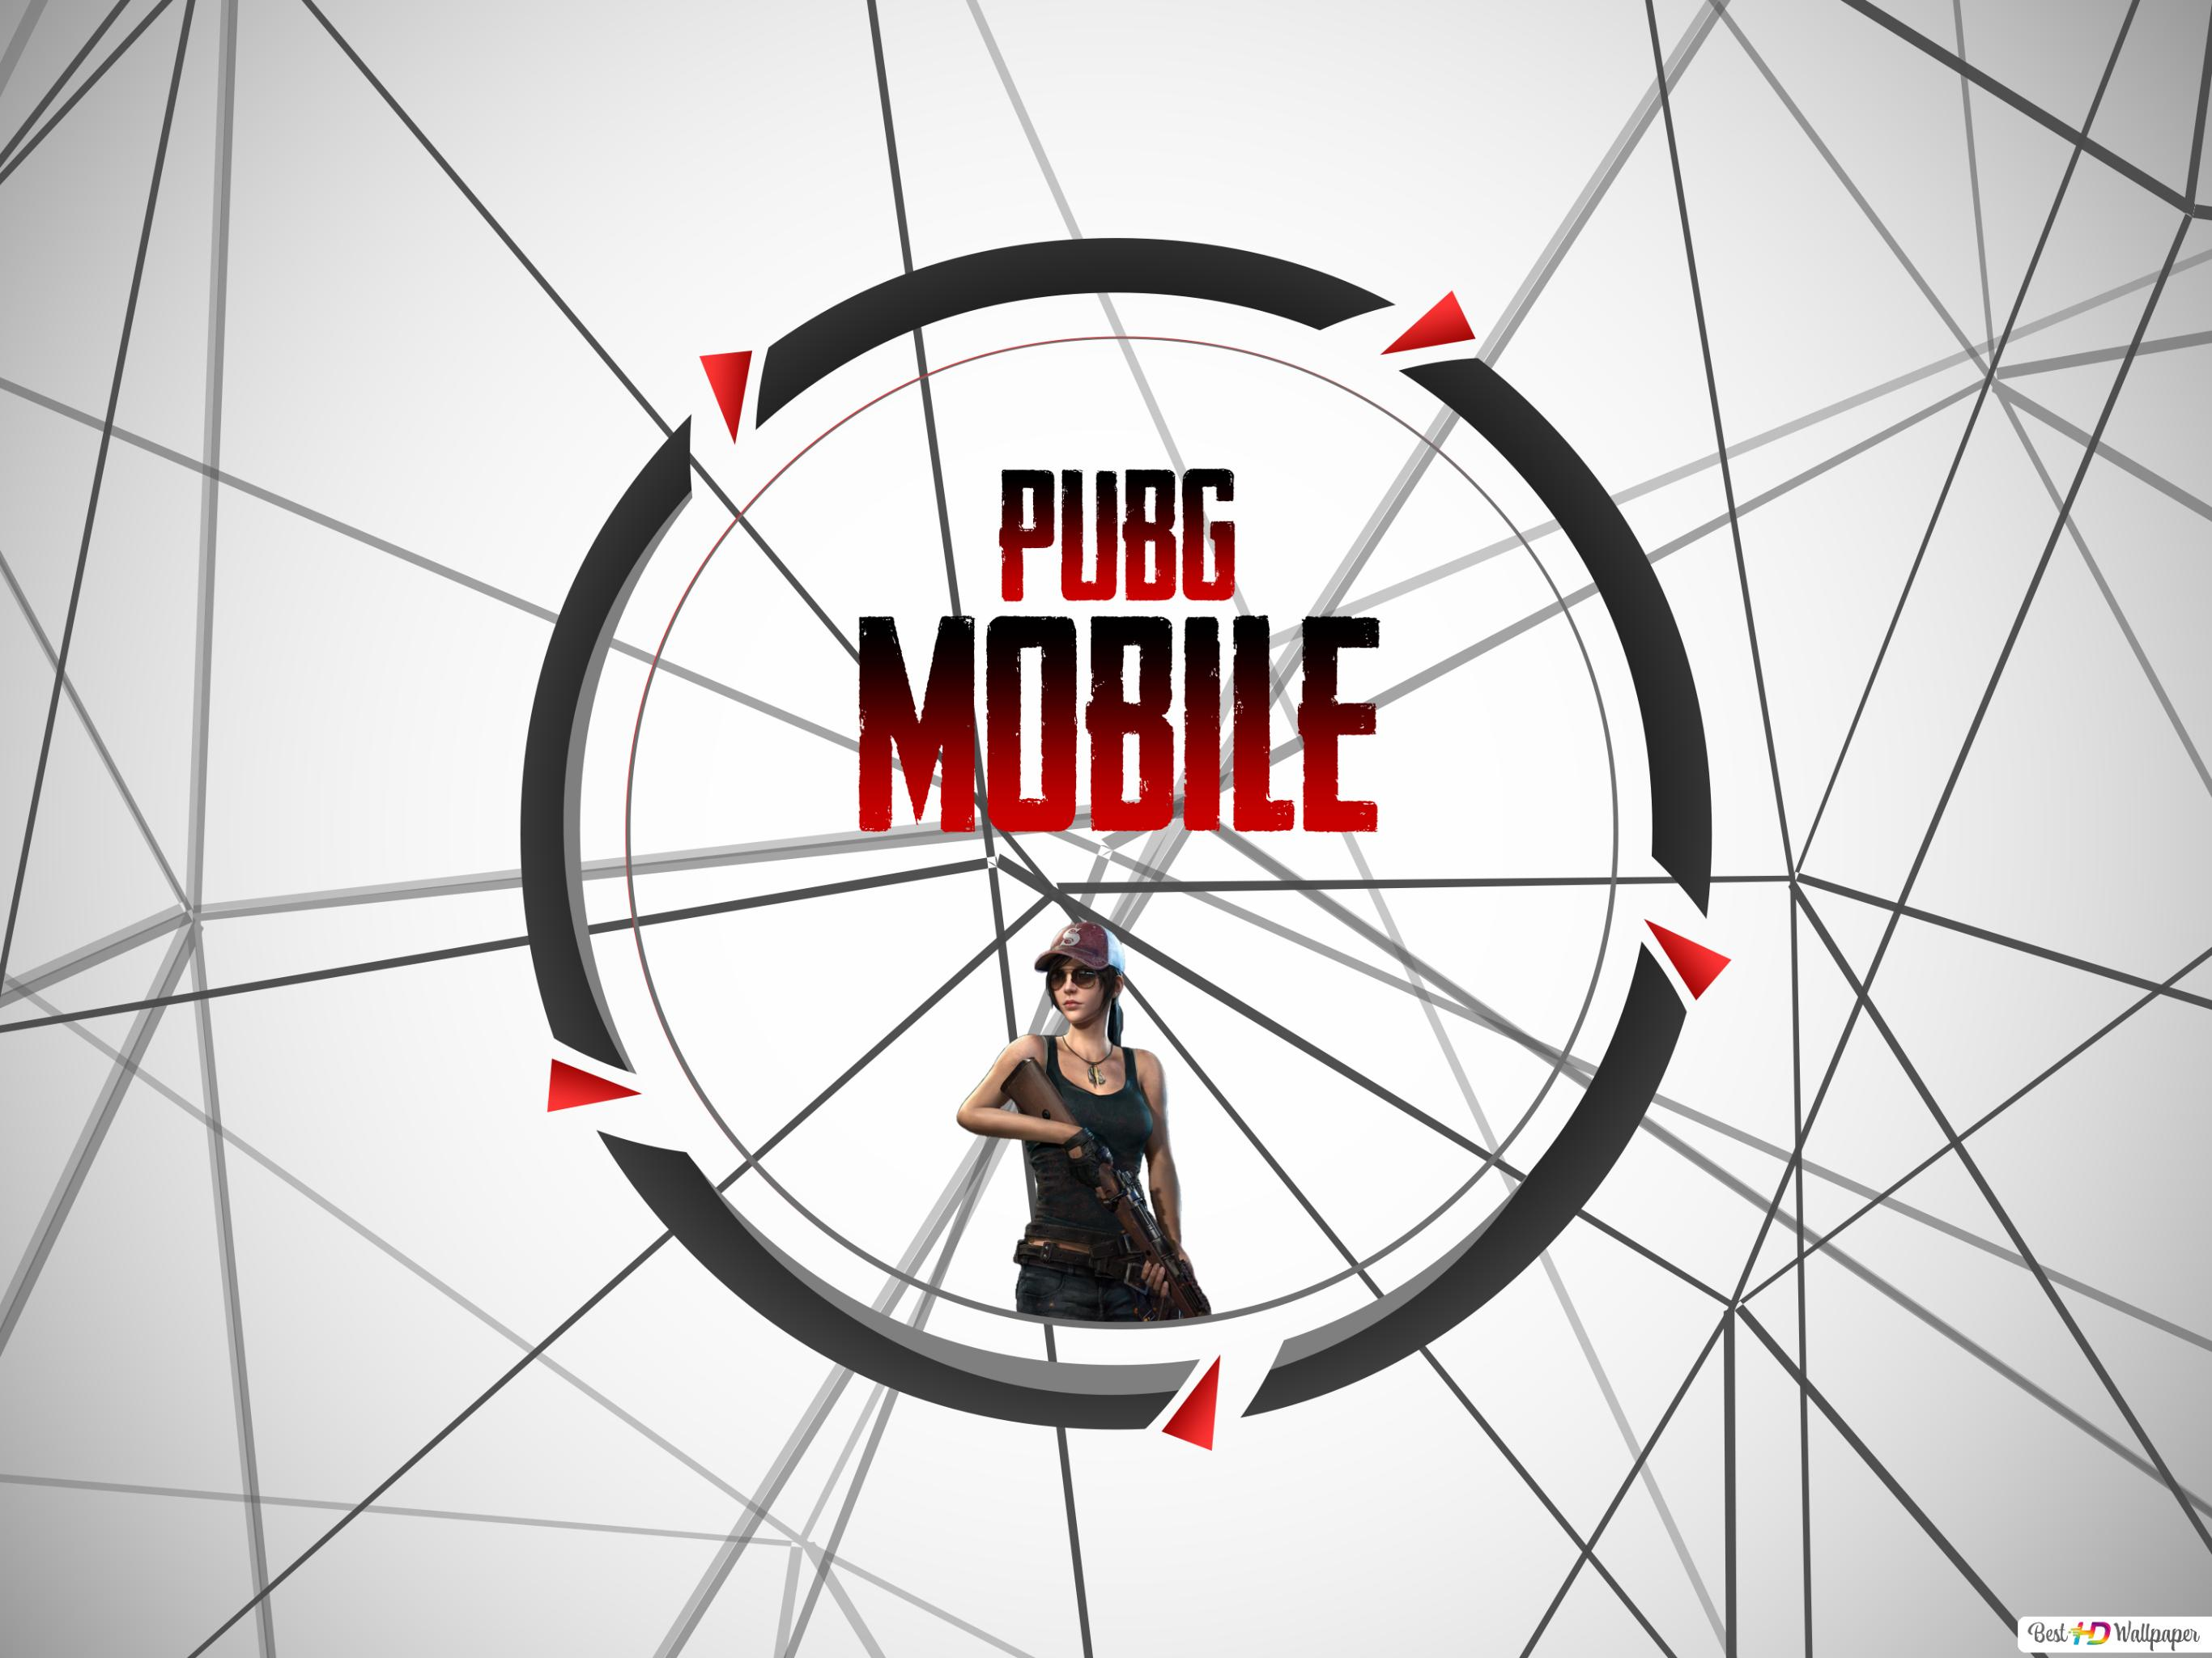 16 Luxury Pubg Wallpaper Iphone 6: Pubg Mobile Hd HD Wallpaper Download